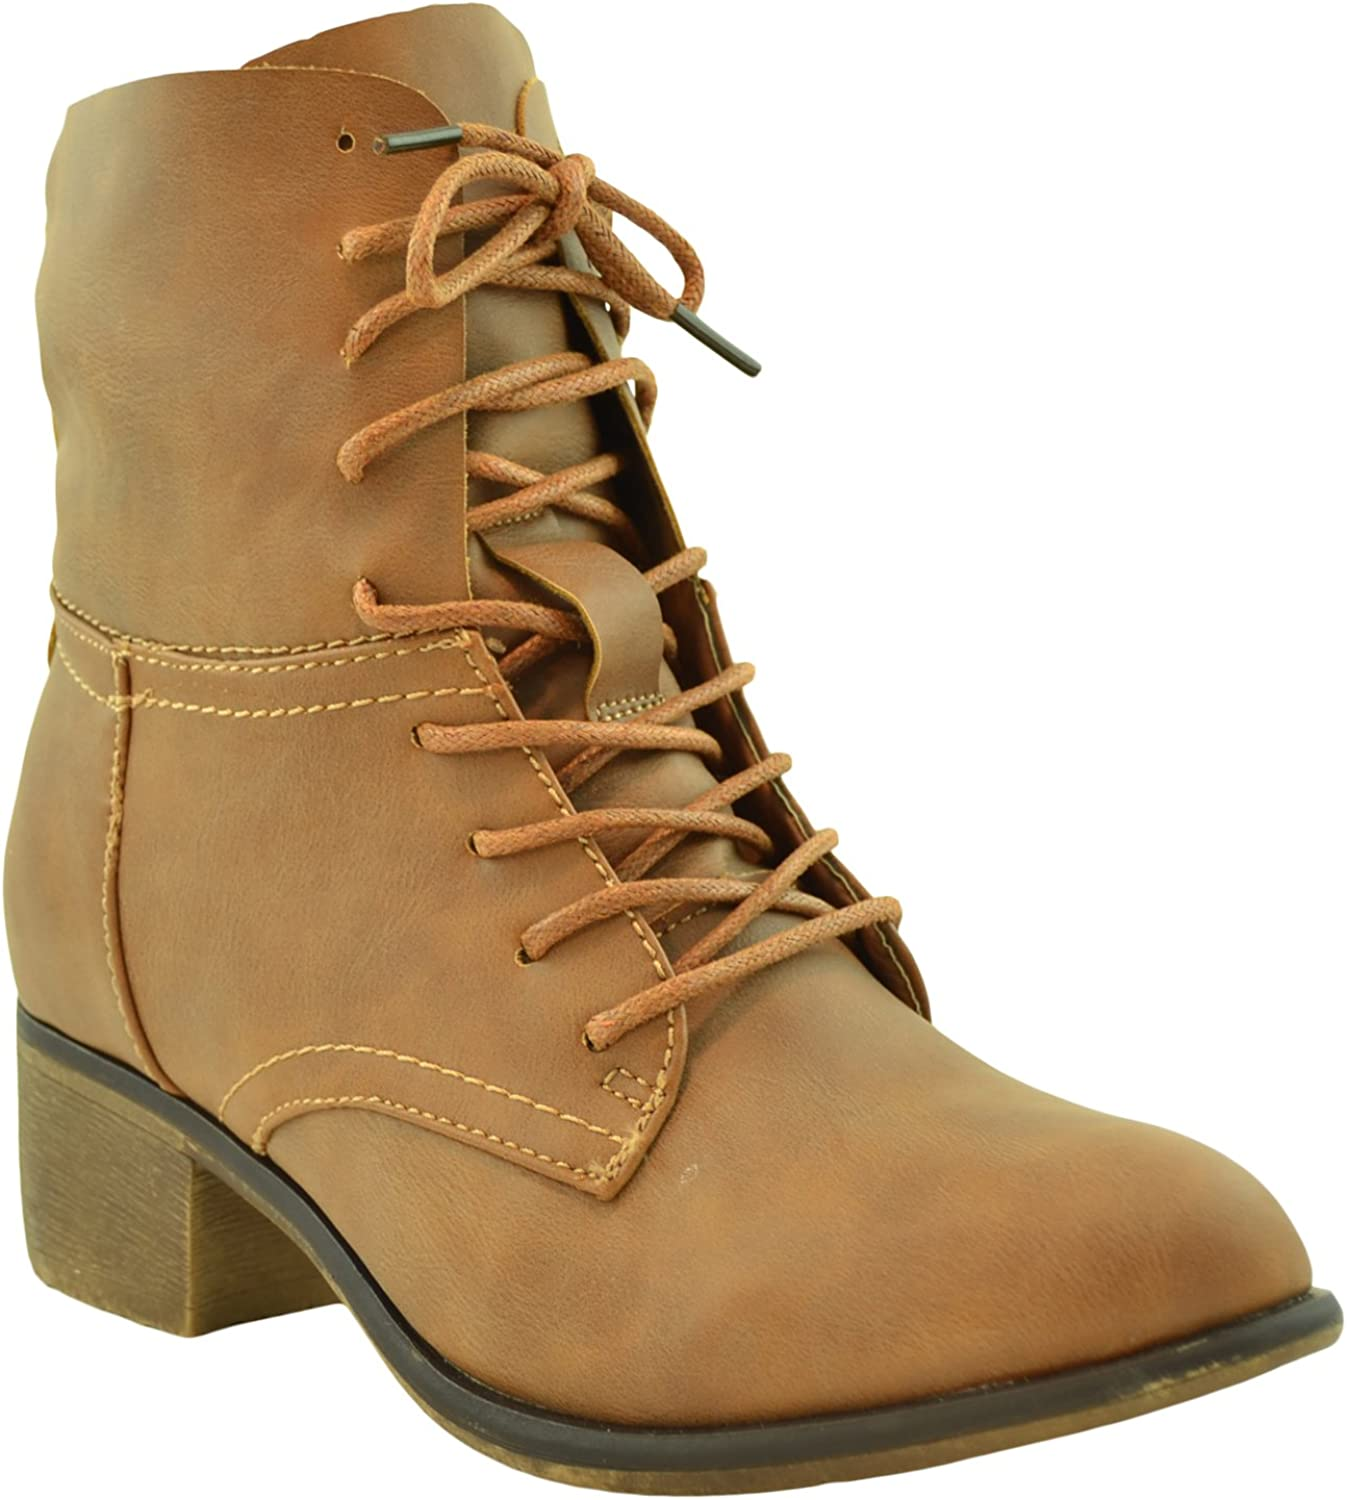 KSC Womens Ankle Boots Faux Leather Lace Up Western Block Heel shoes Cognac